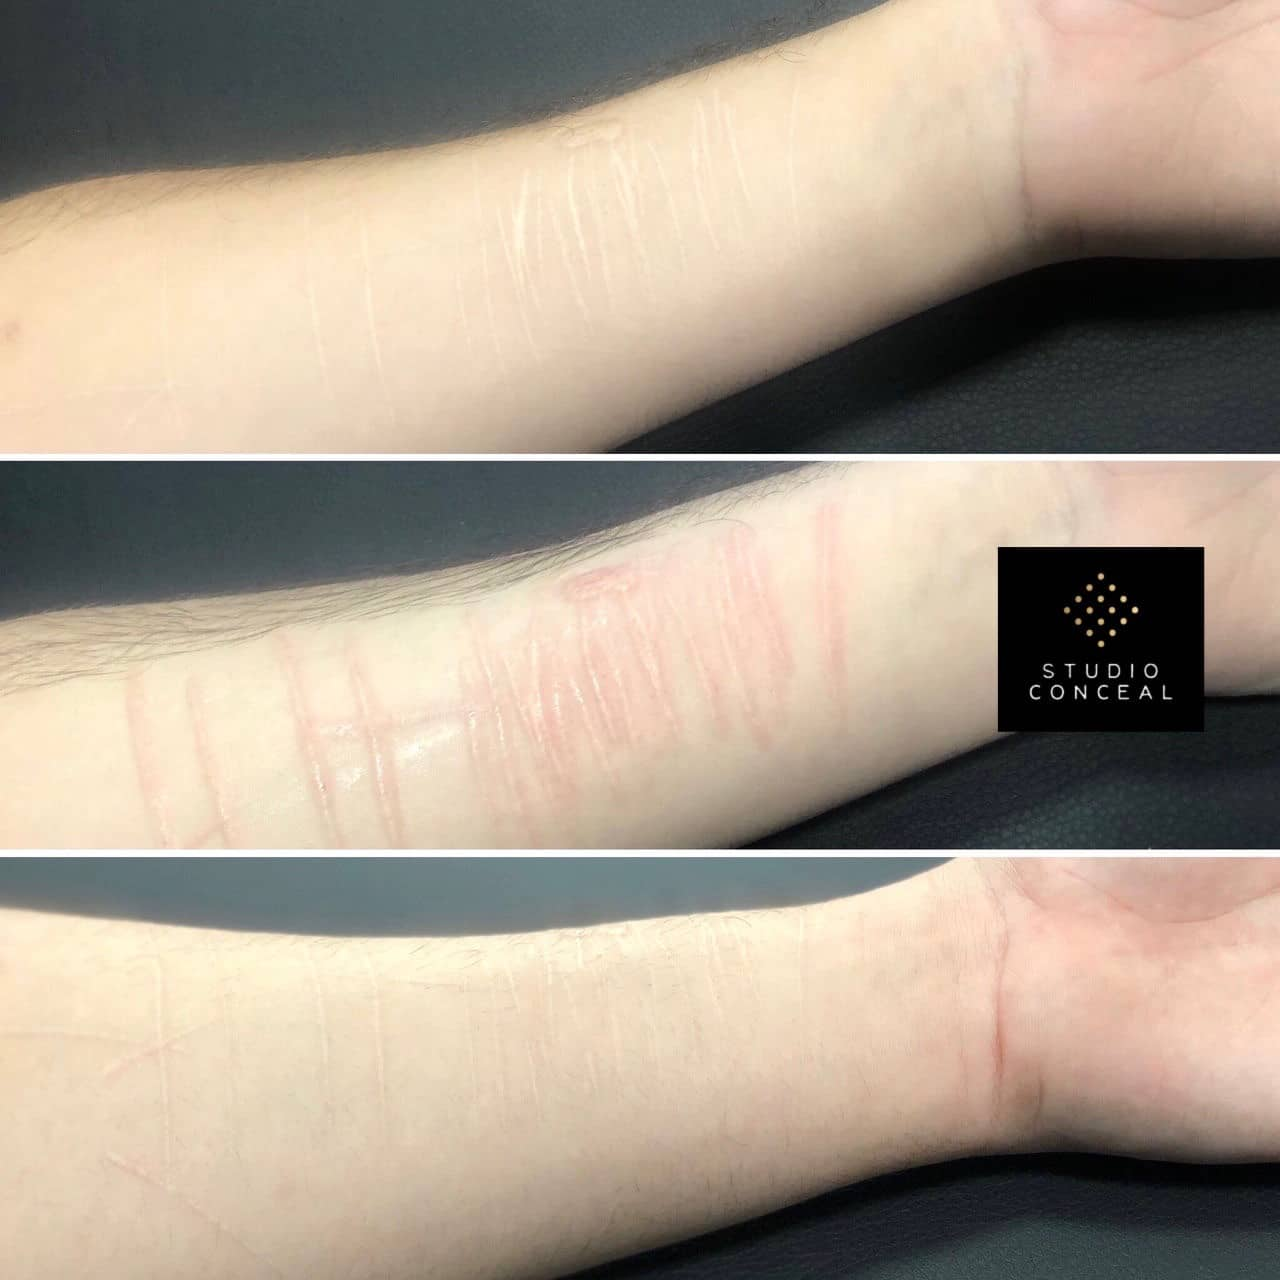 Self harm tattoo coverup before and after pictures